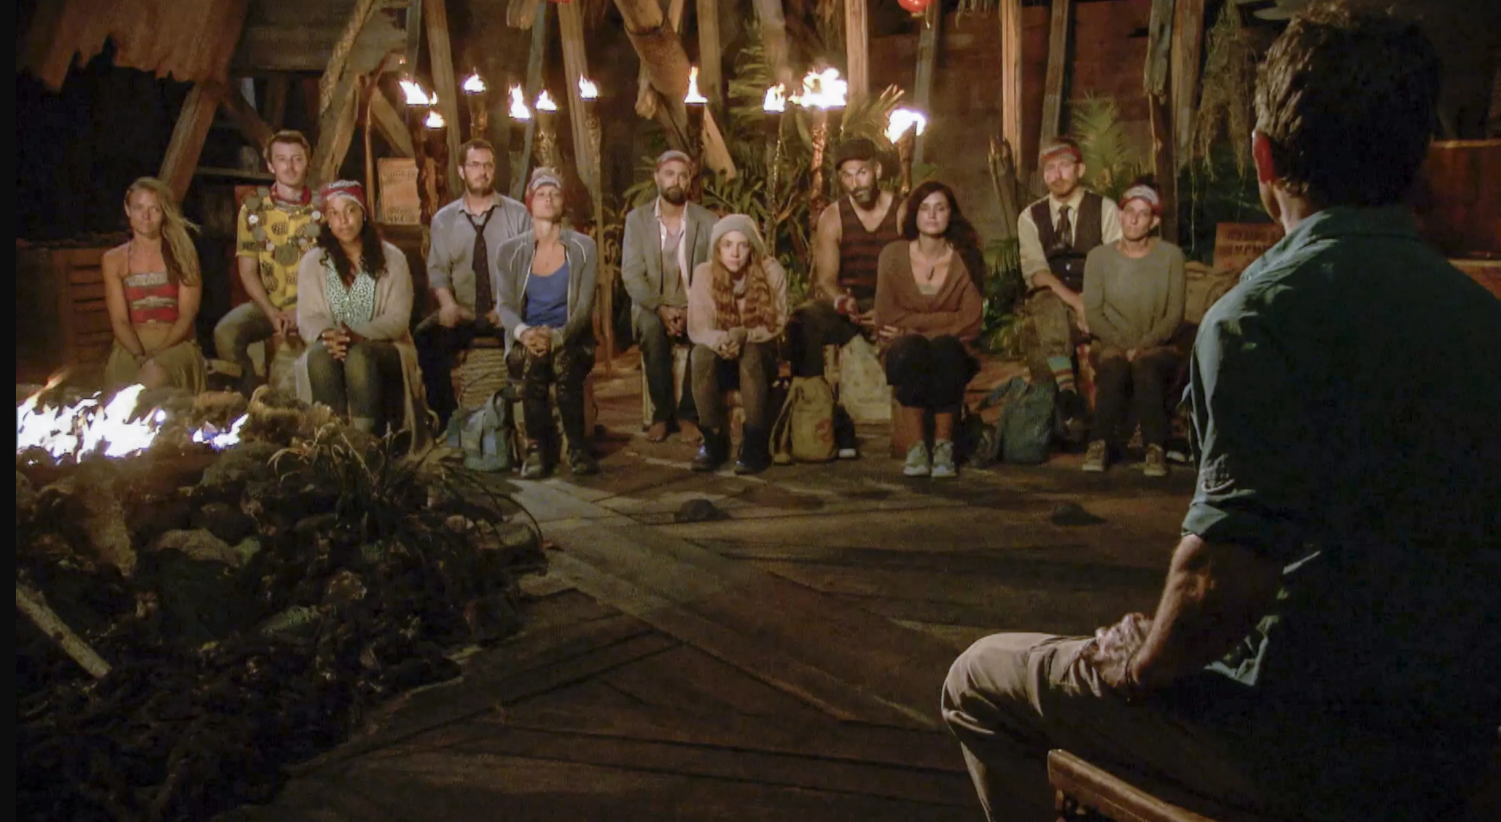 Jeff Probst chats with the final 11 contestants on